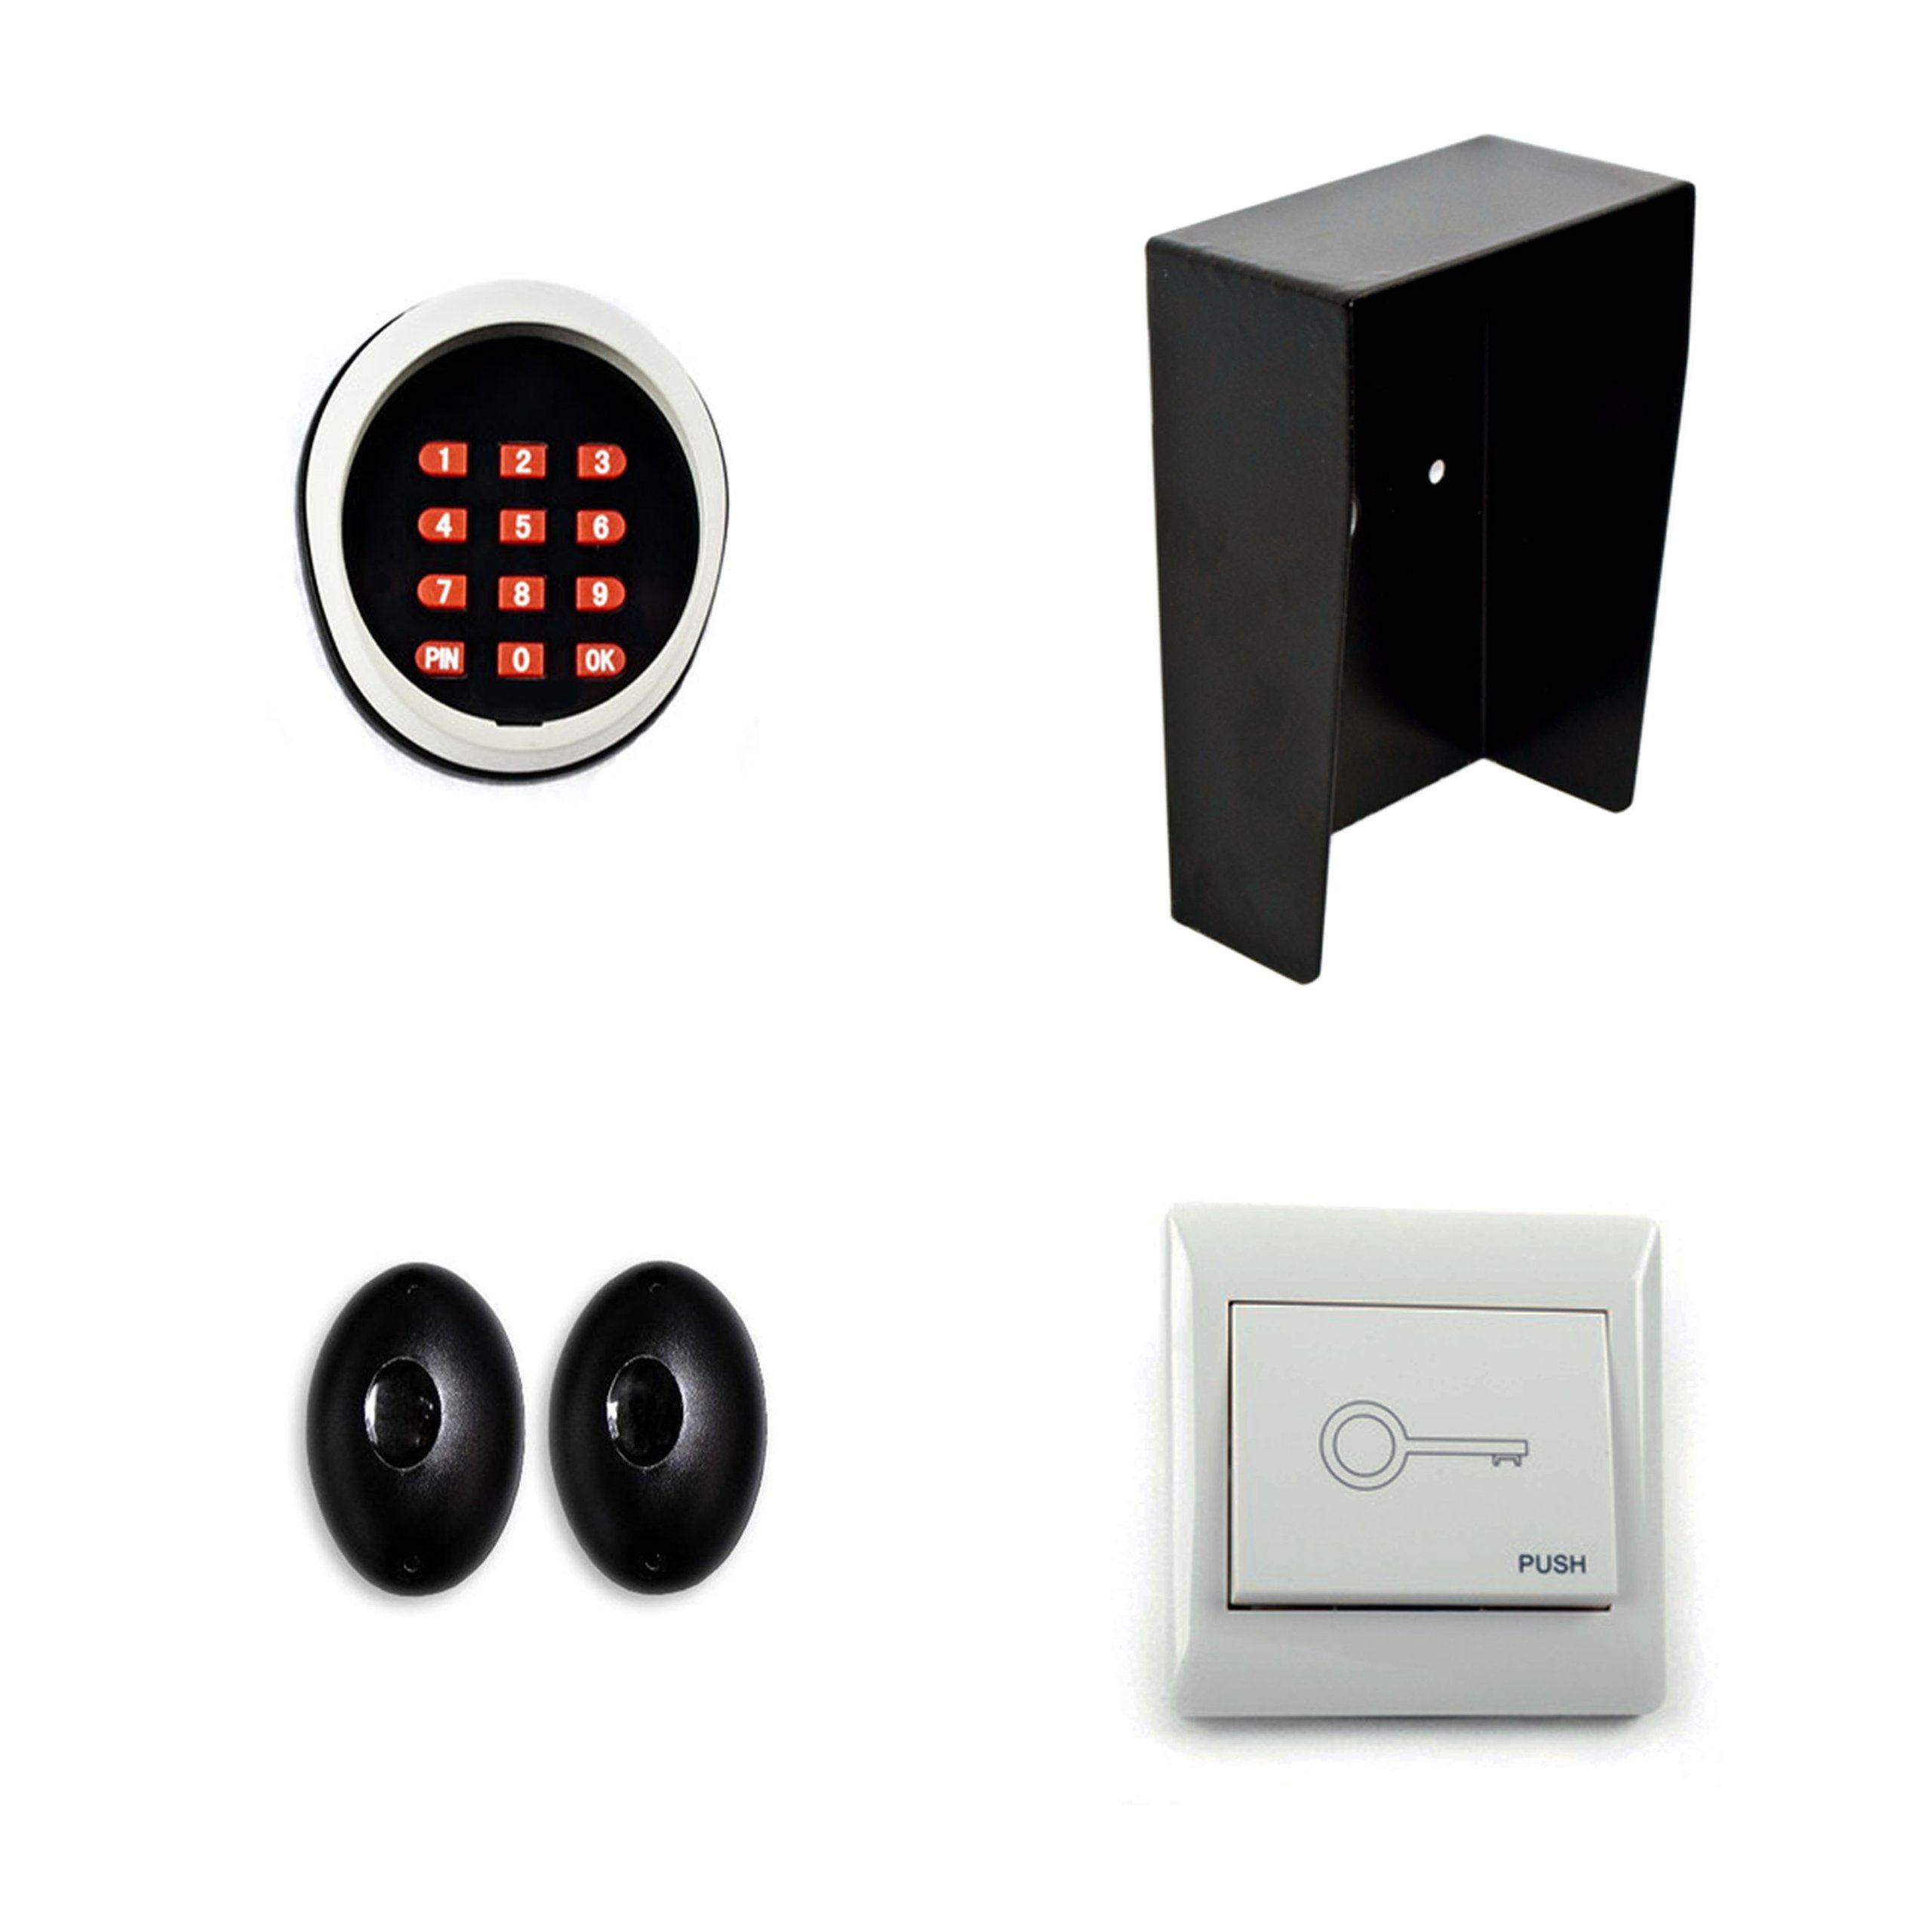 ALEKO ACC4 Accessory Kit for Aleko Gate Openers (Includes LM102, LM147, LM172 and LM169)